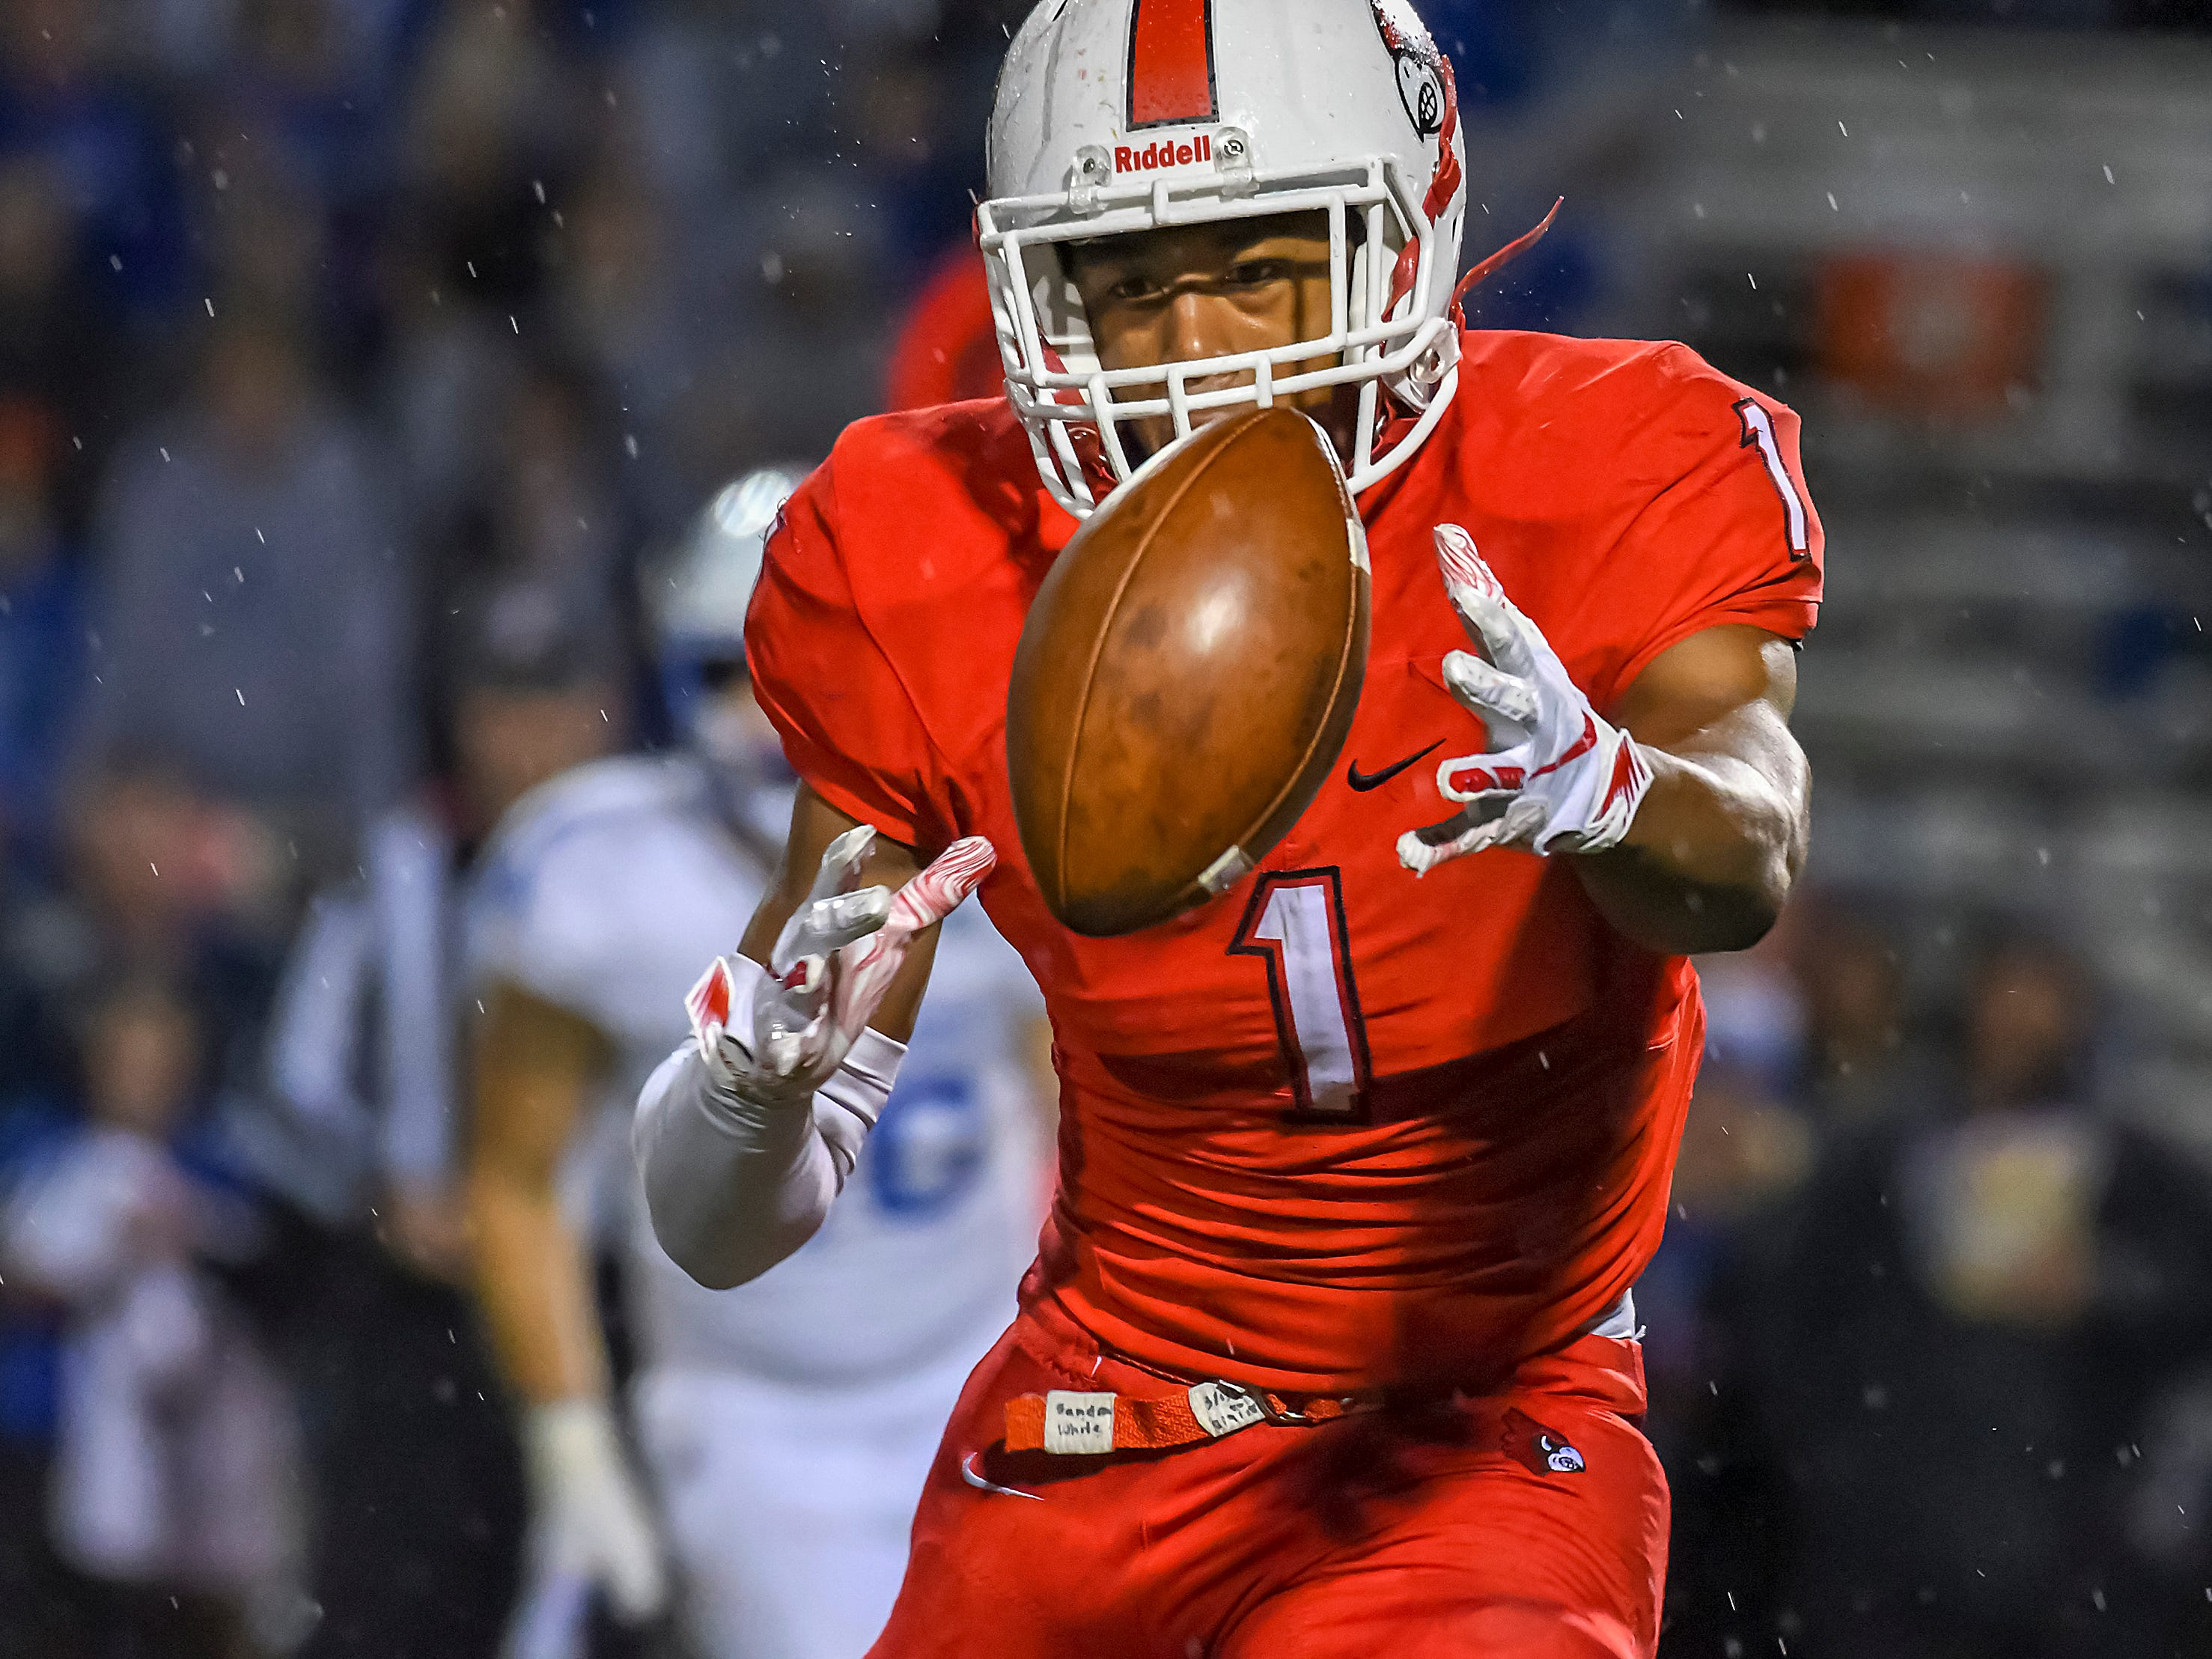 Cardinal running back Syncere Jones bobbles the pitch against St. X in the OHSAA DI Region 4 Playoffs at Colerain High School,  Friday Nov. 2, 2018